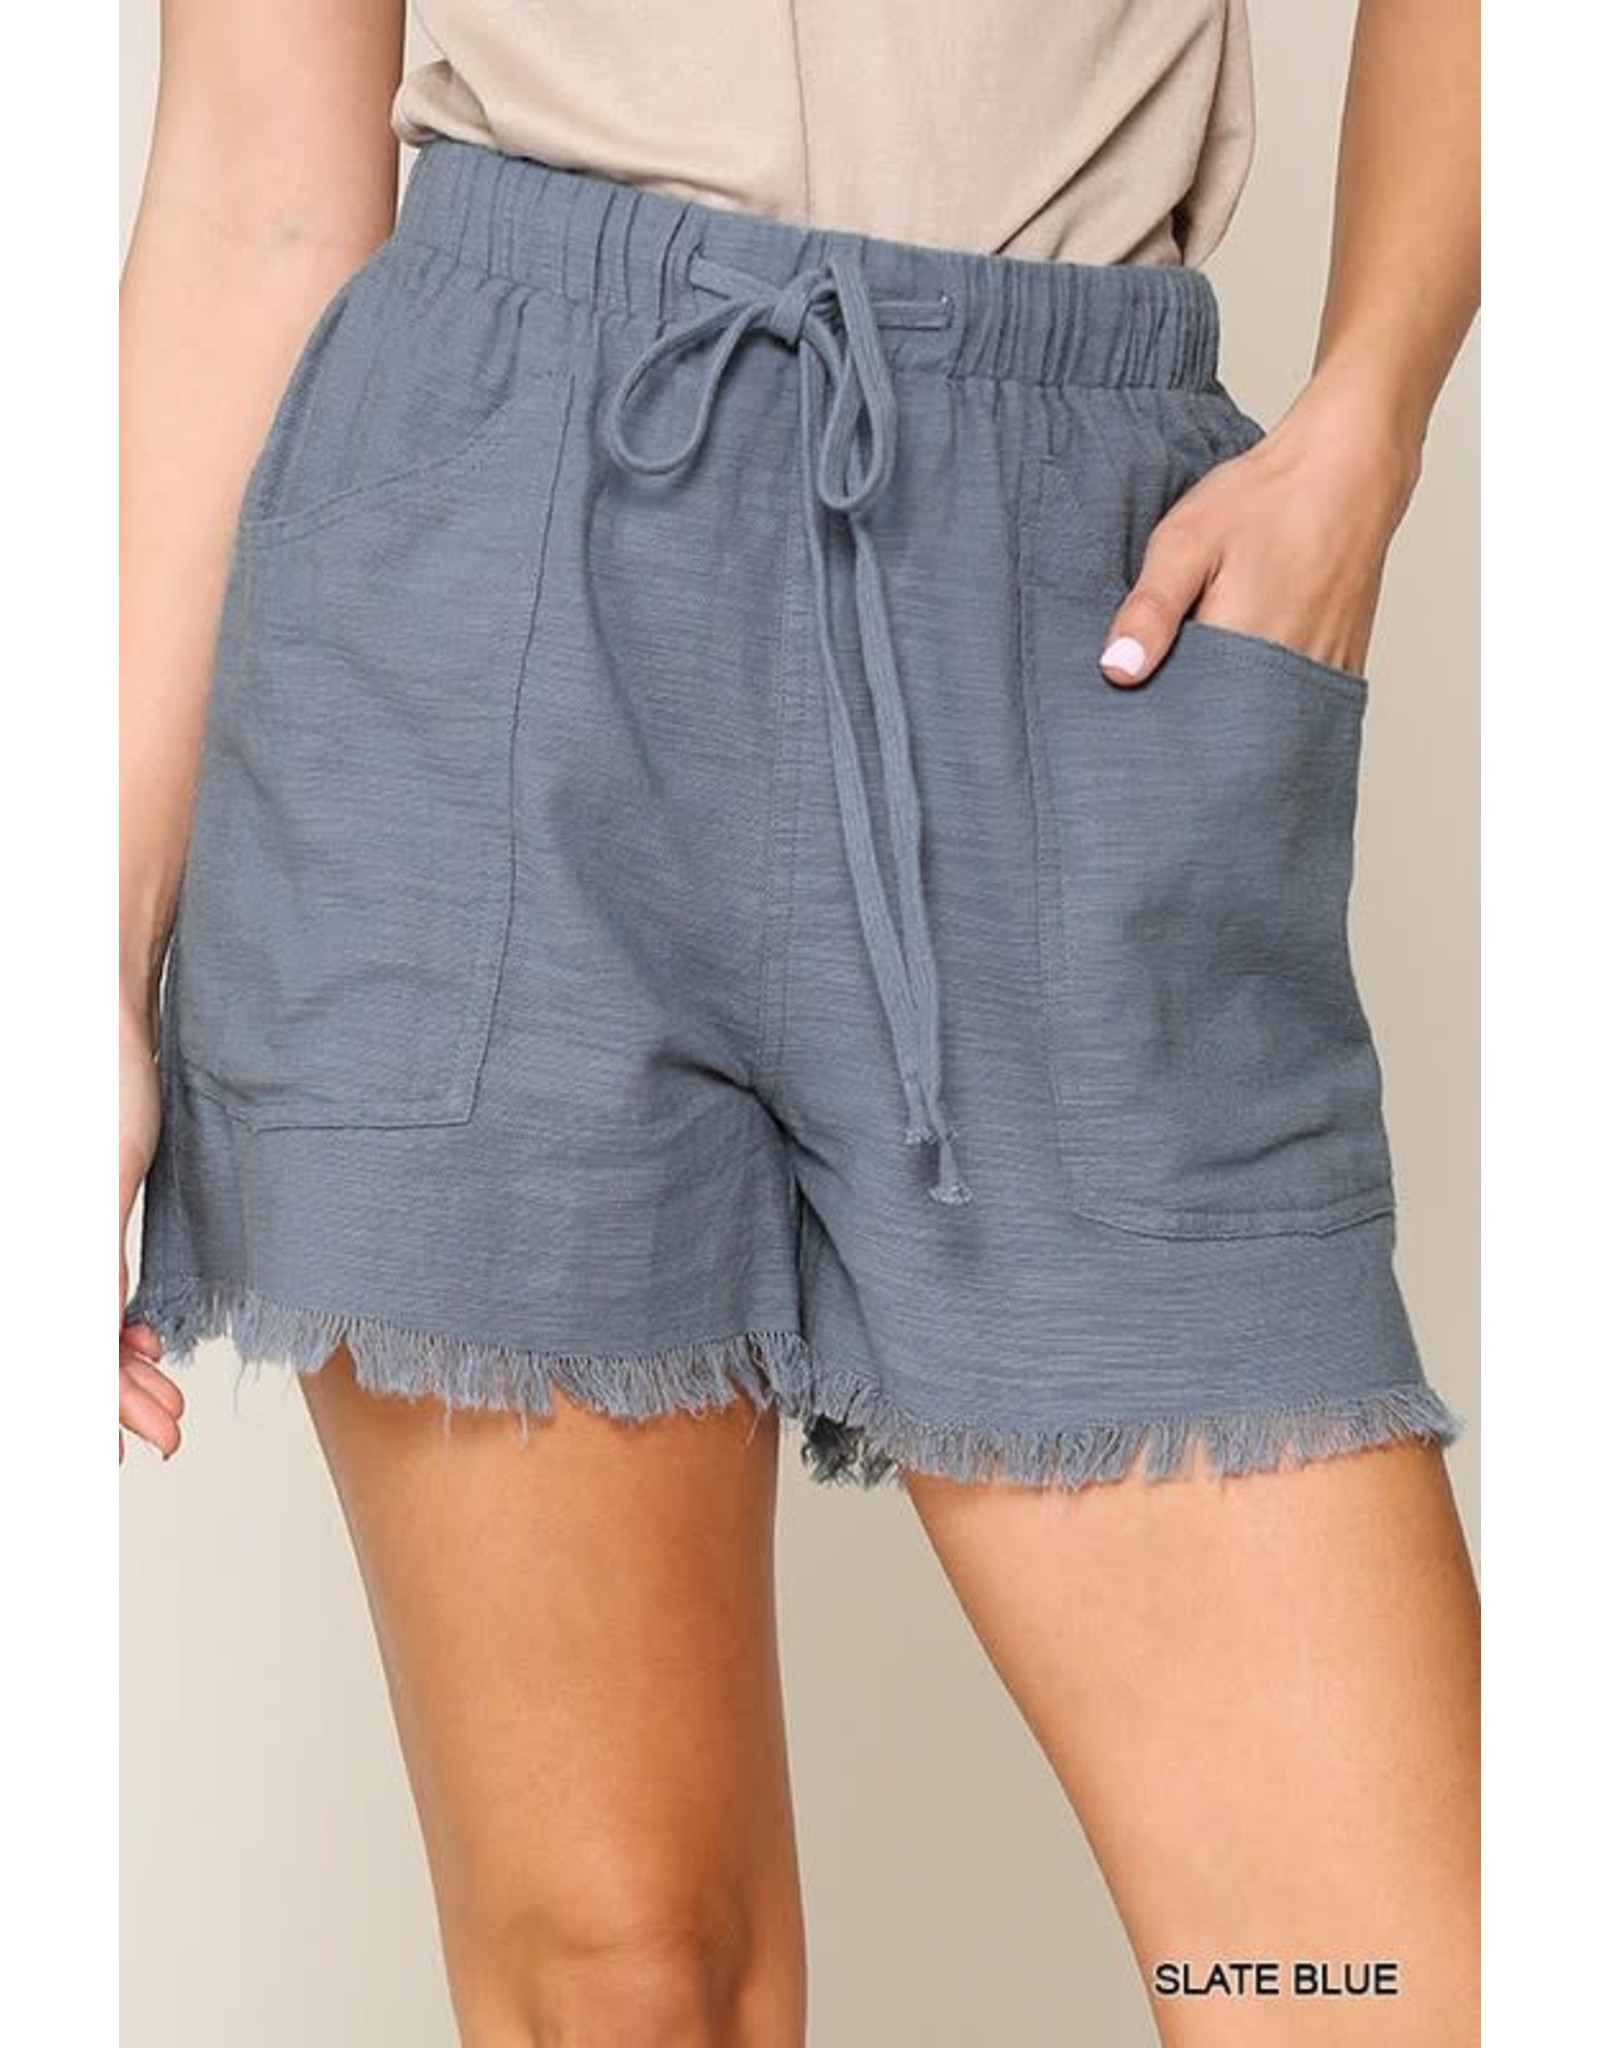 GIGIO SLATE BLUE FRAYED HEM SHORTS WITH DRAWSTRING WAIST